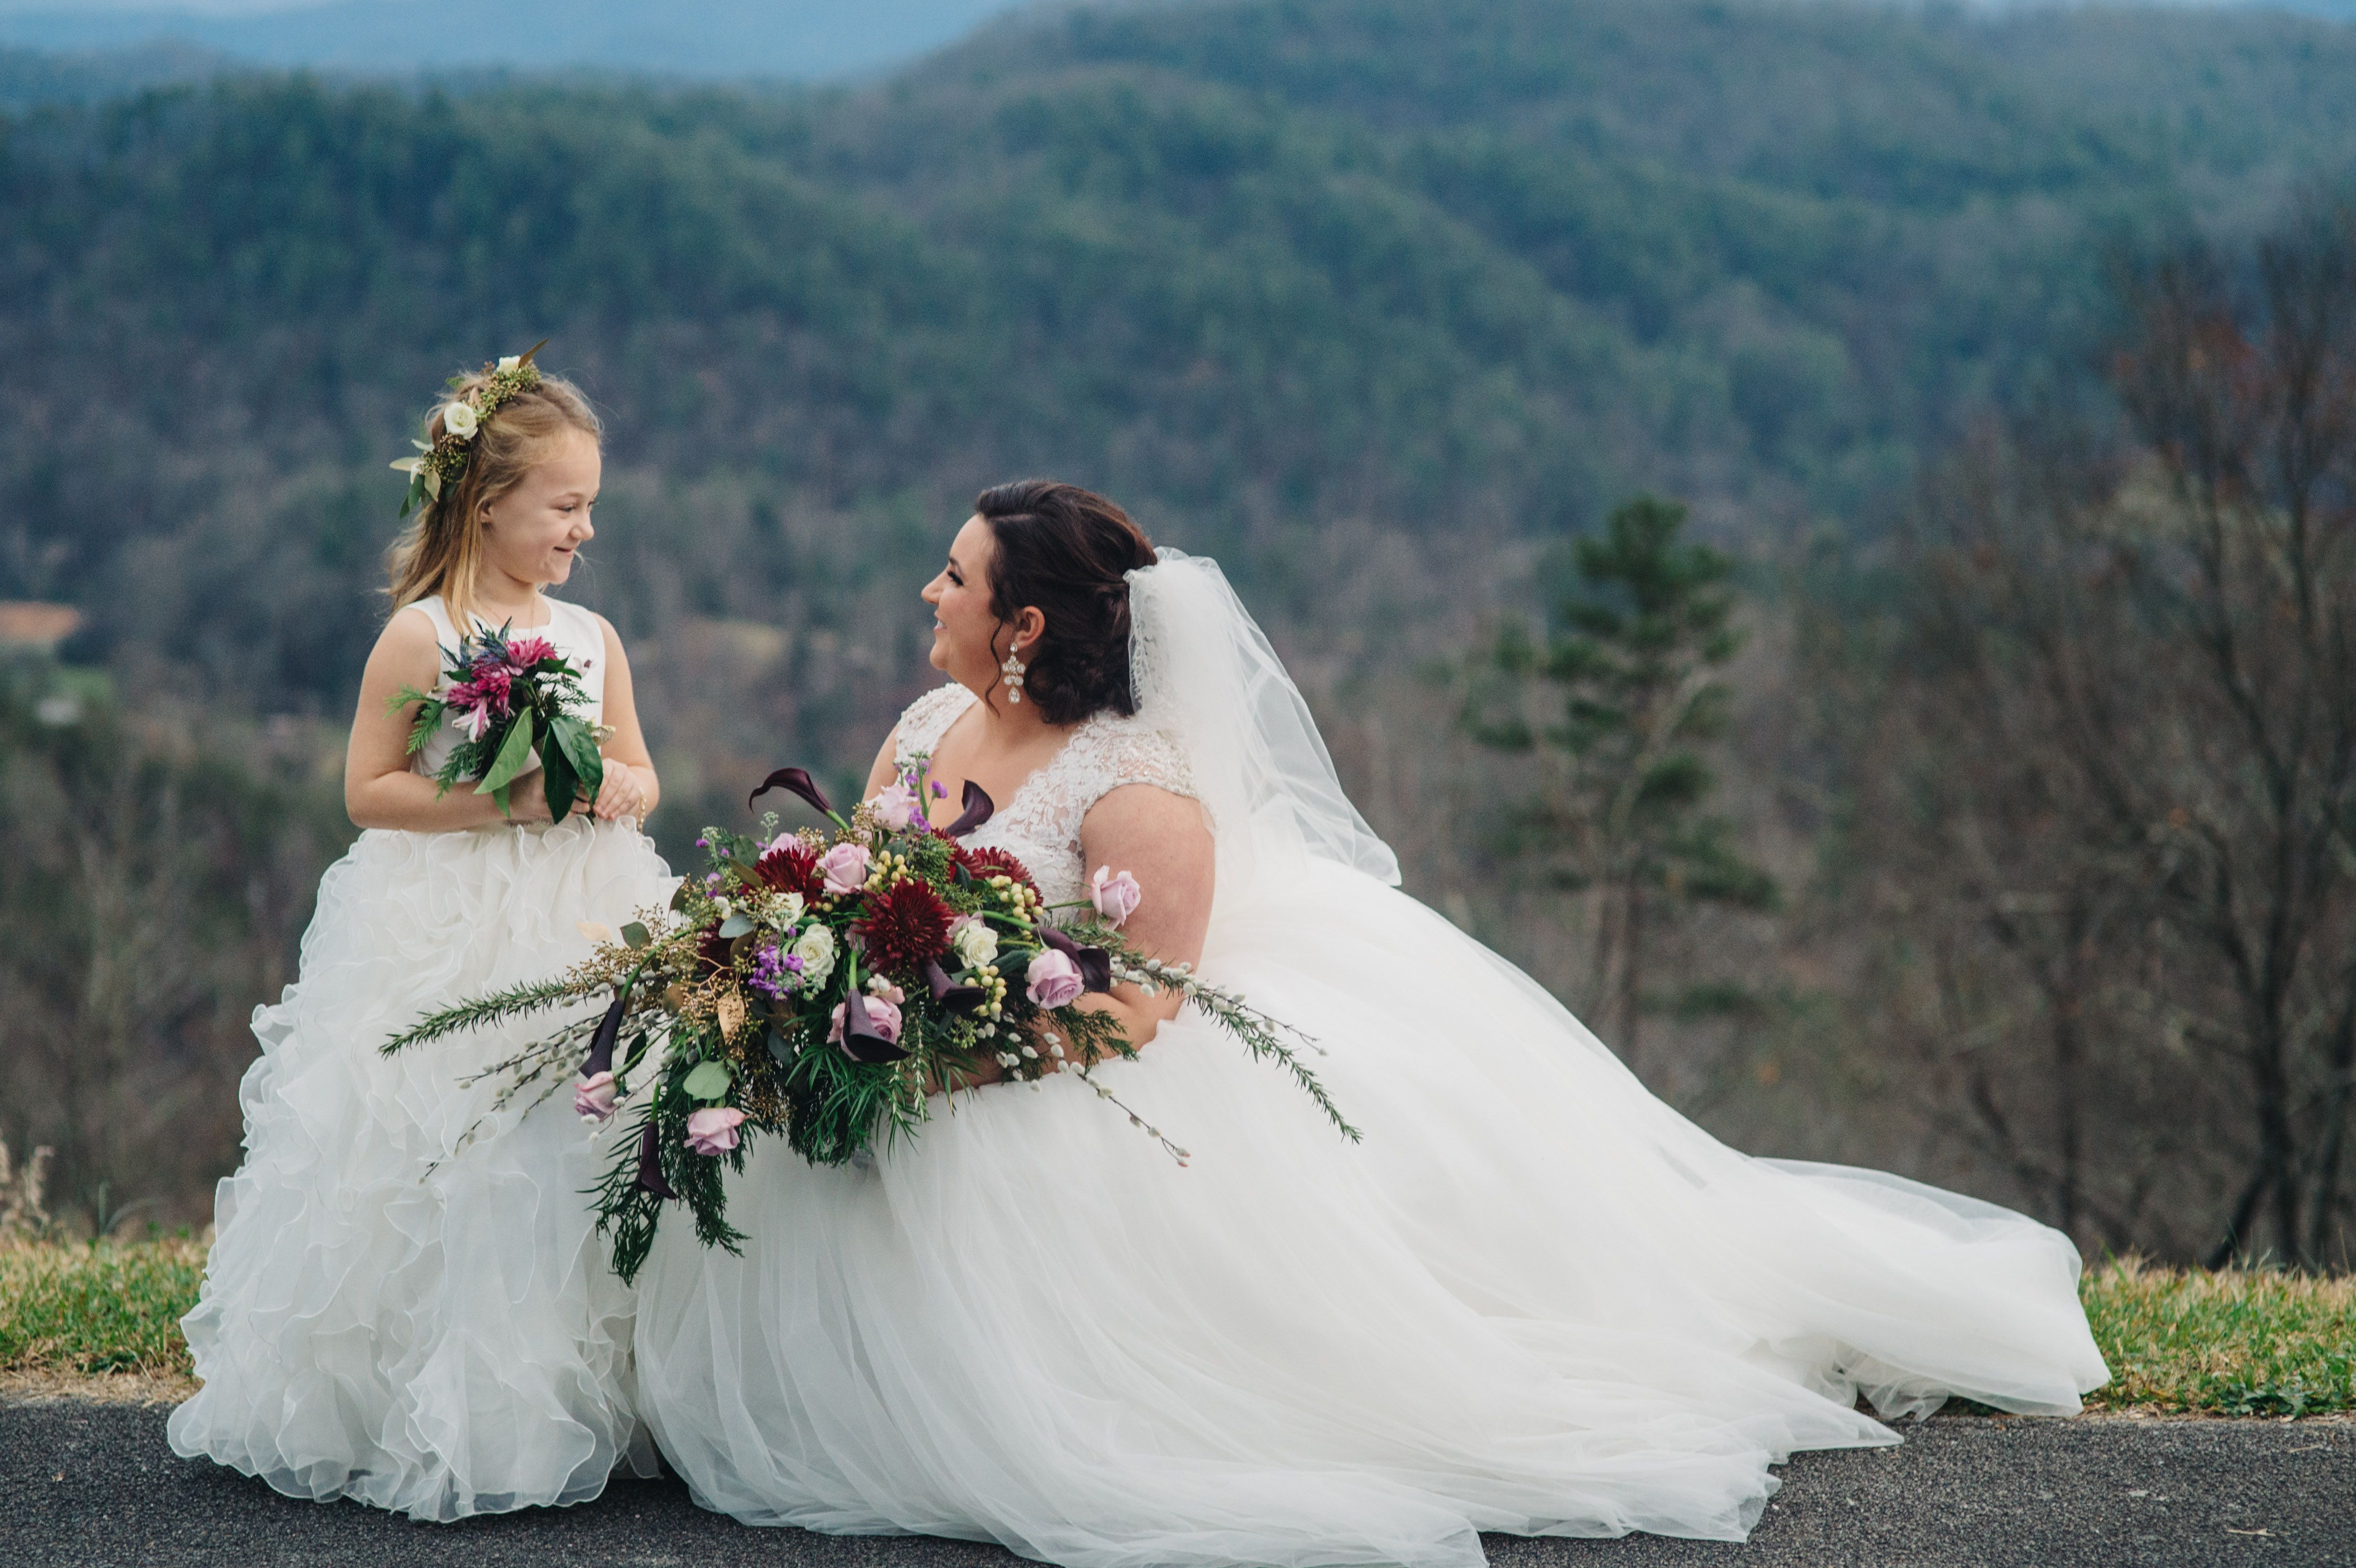 Dresses for a winter wedding reception  Enchanting Mountain Wedding  Barn Winter wedding receptions and